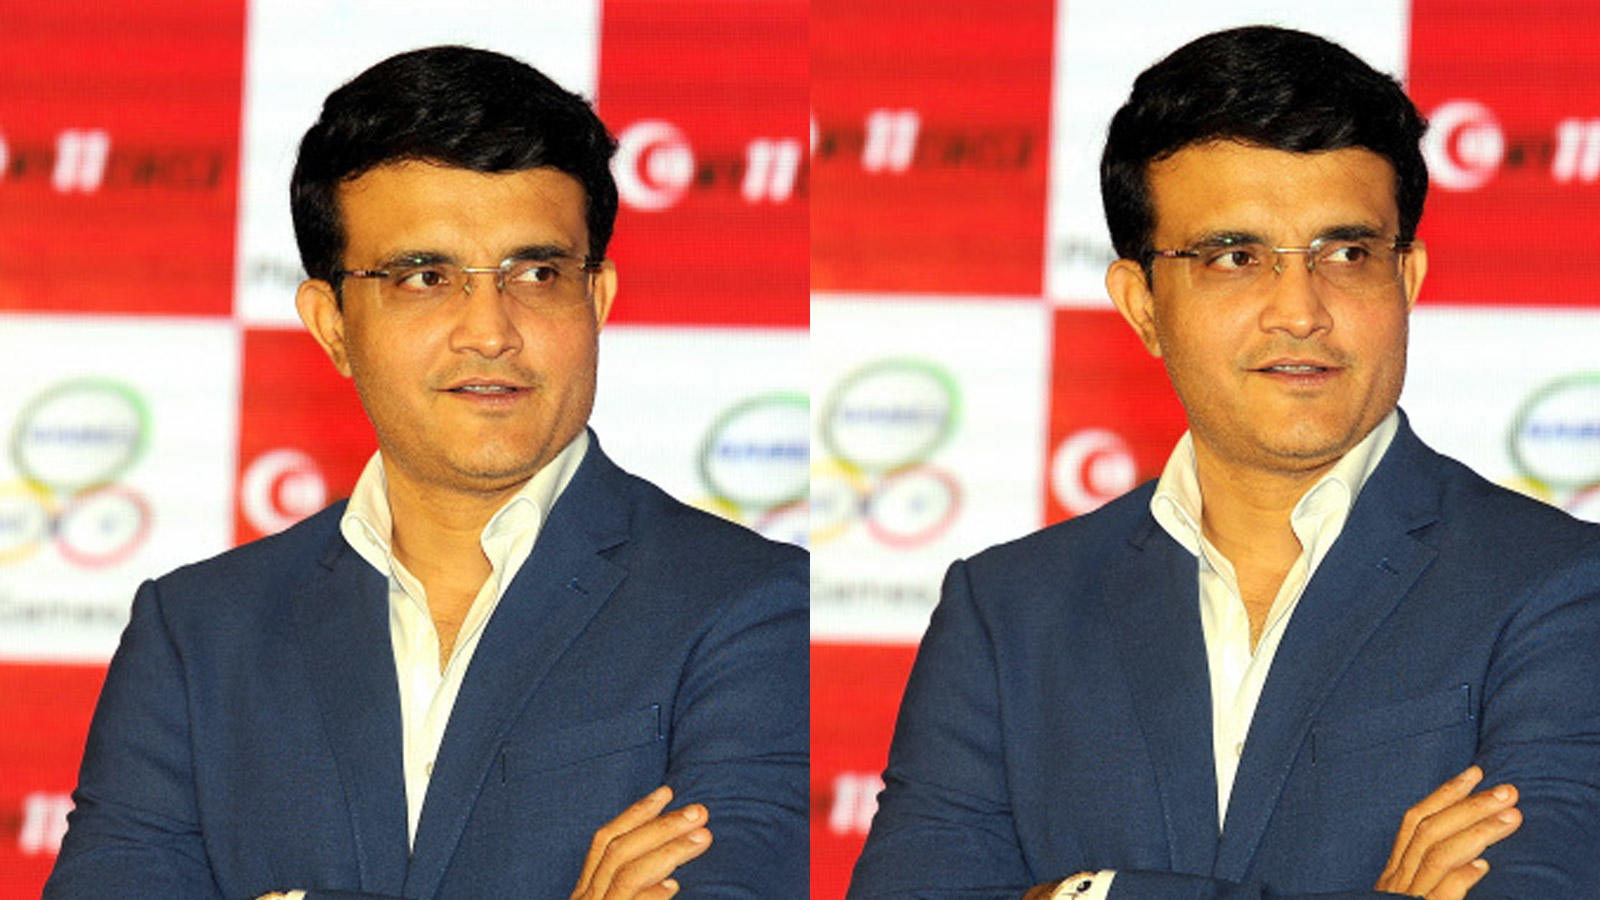 covid-19-not-going-anywhere-at-least-till-end-of-2020-but-ipl-set-to-move-out-feels-sourav-ganguly